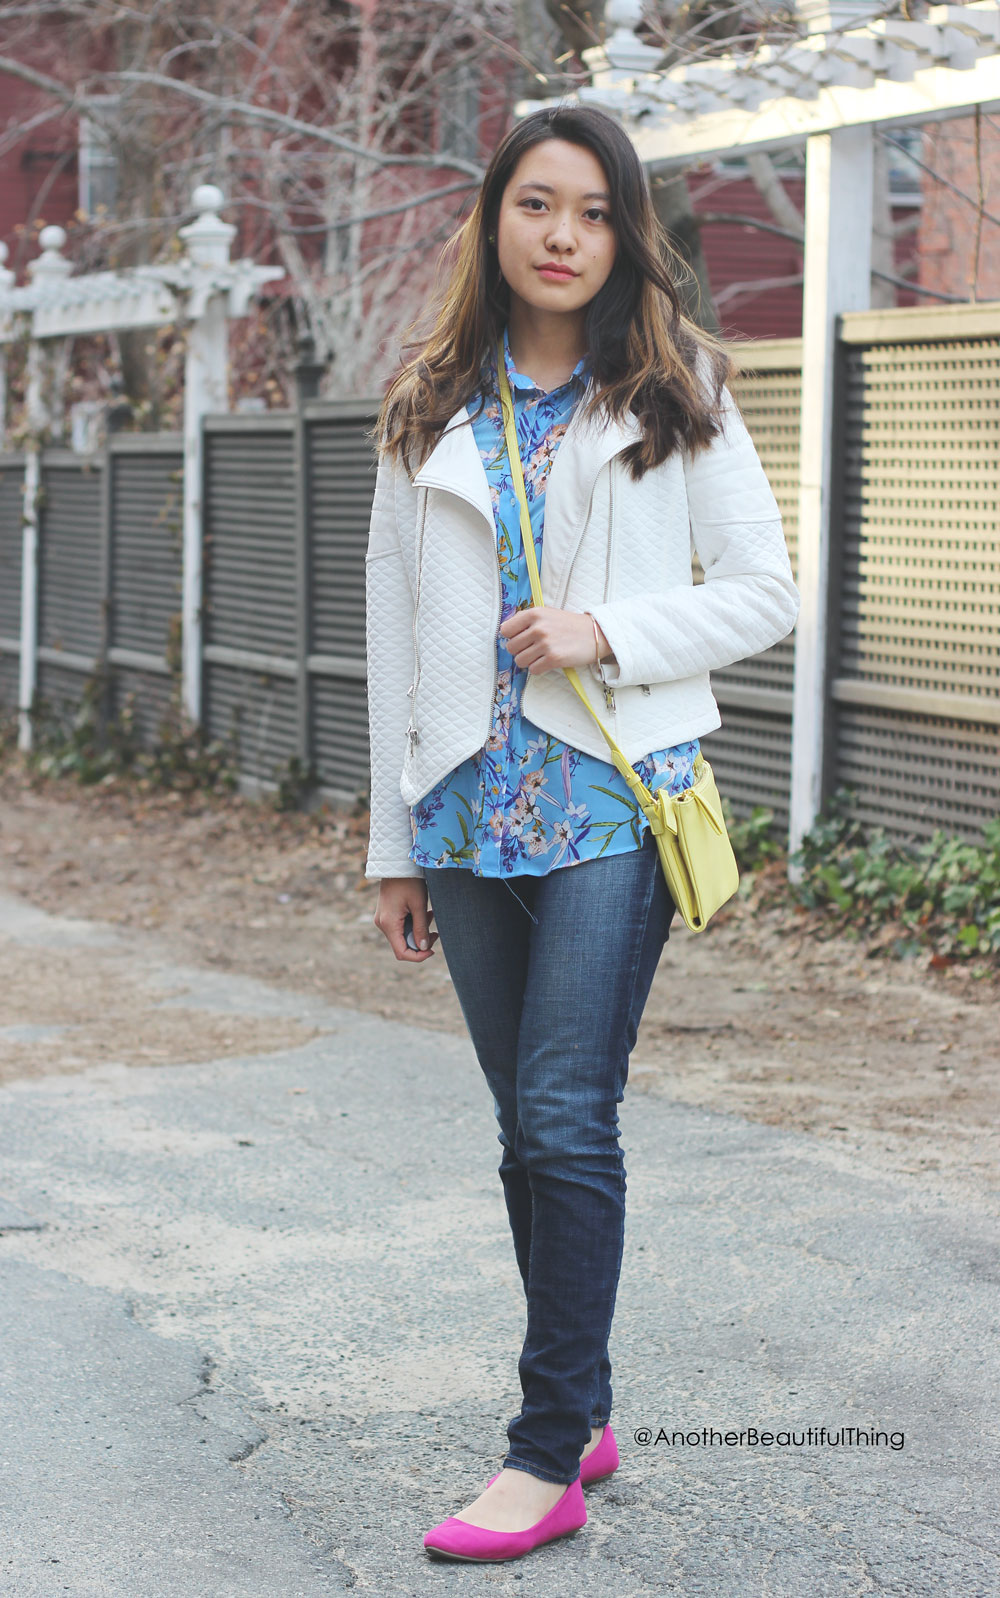 Florals and brights plus a white faux leather jacket